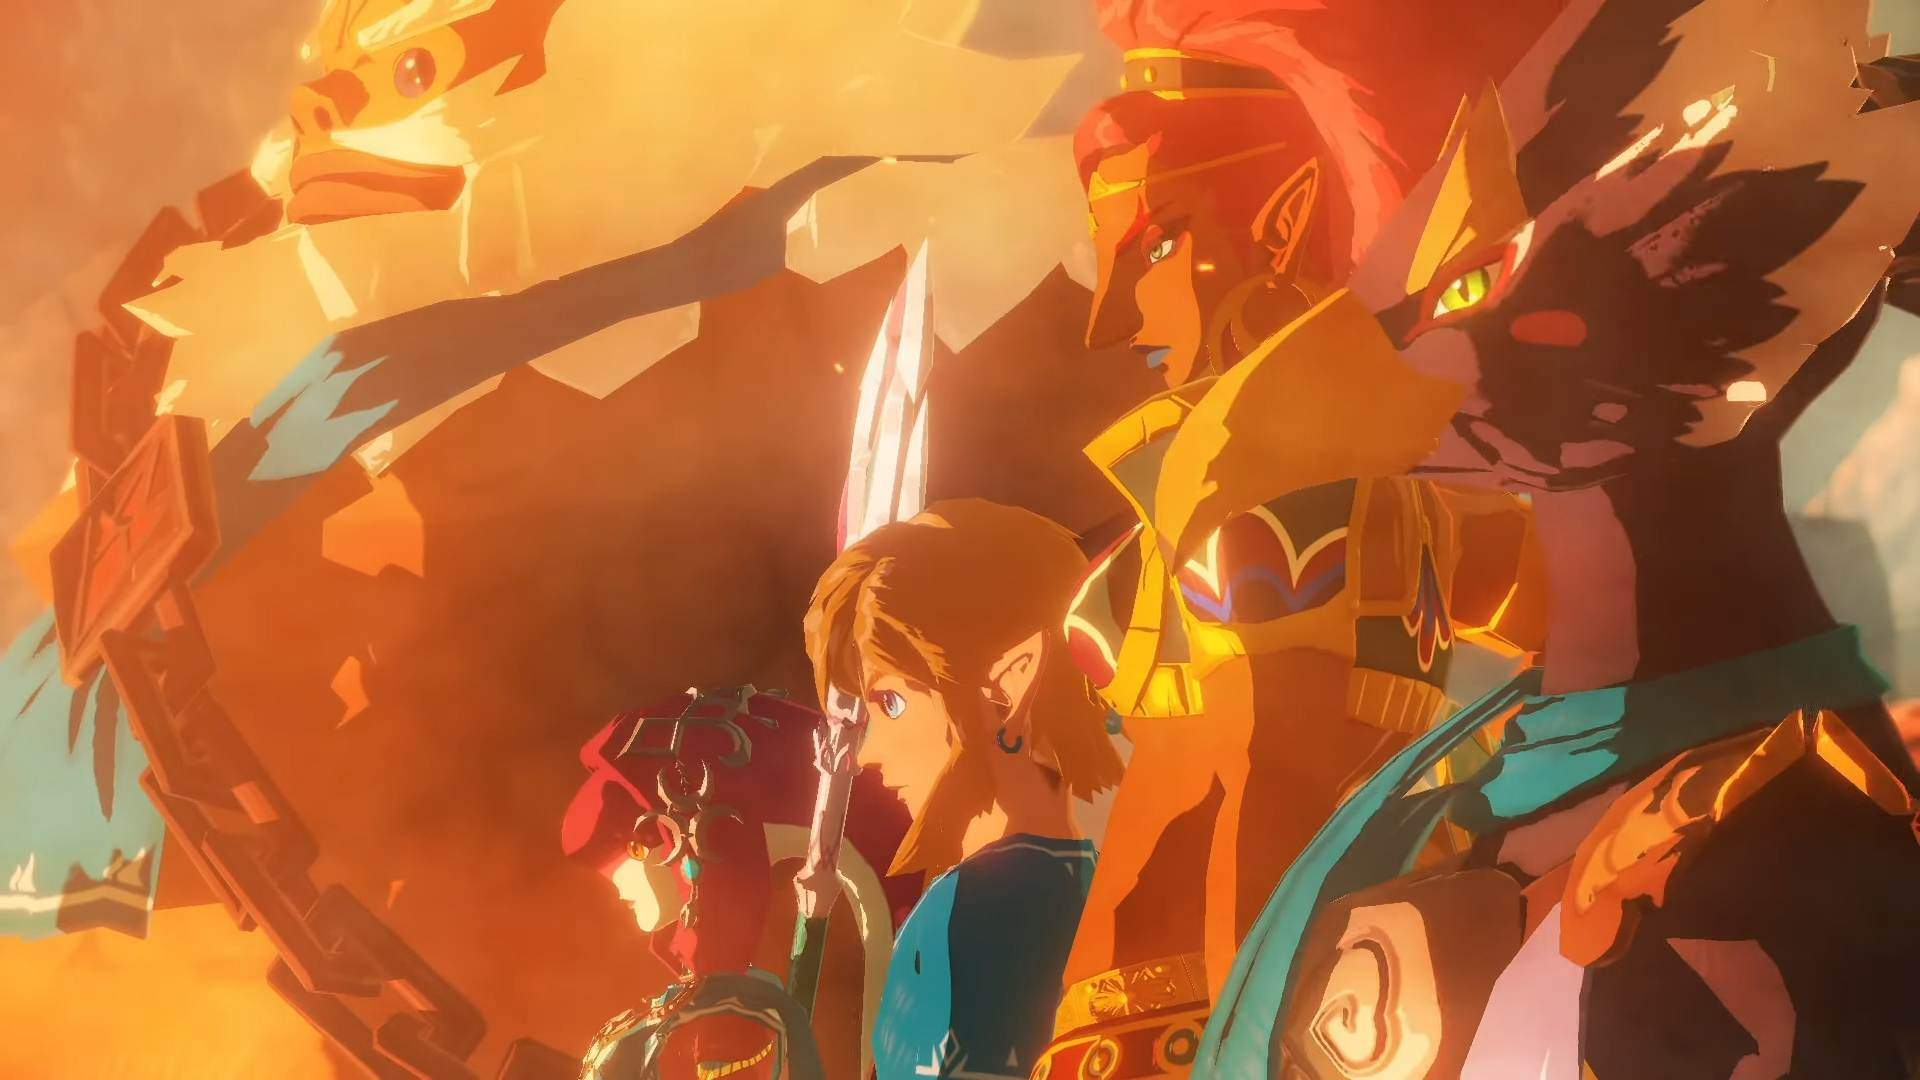 Why Hyrule Warriors: Age of Calamity's Biggest Failing Is Its Advertising